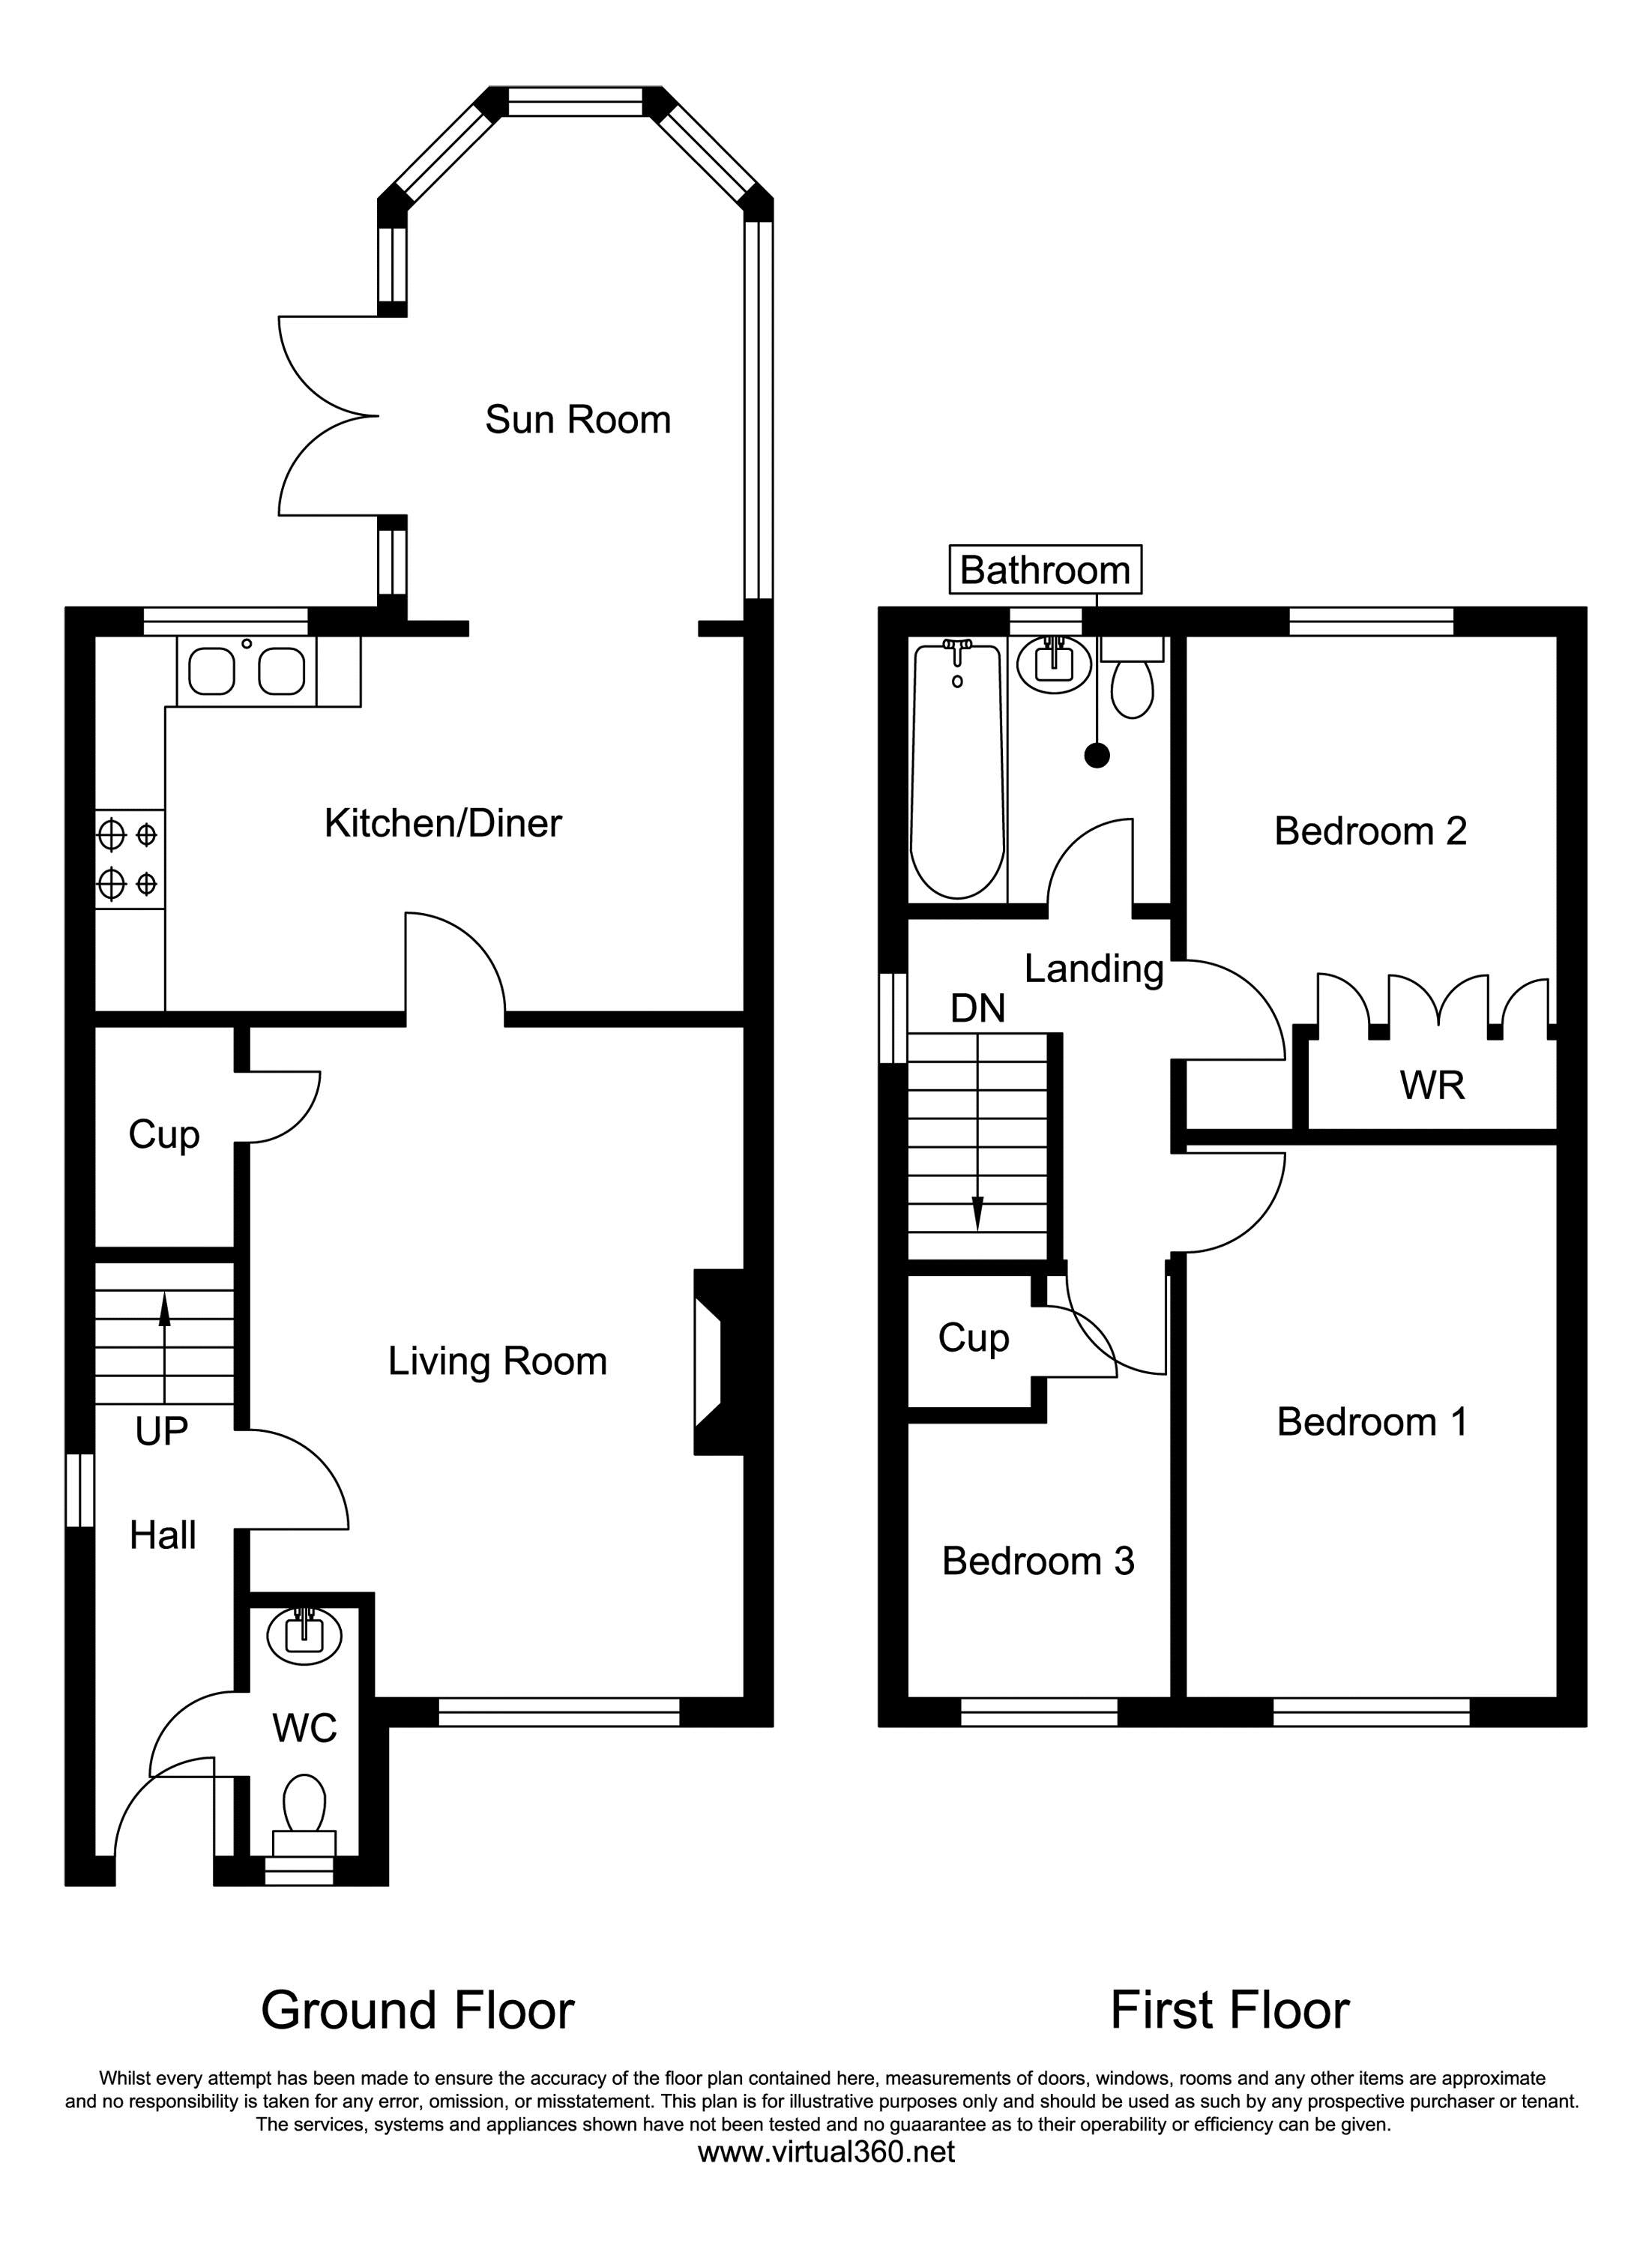 Aspen Park Road, Weston-Super-Mare floor plan